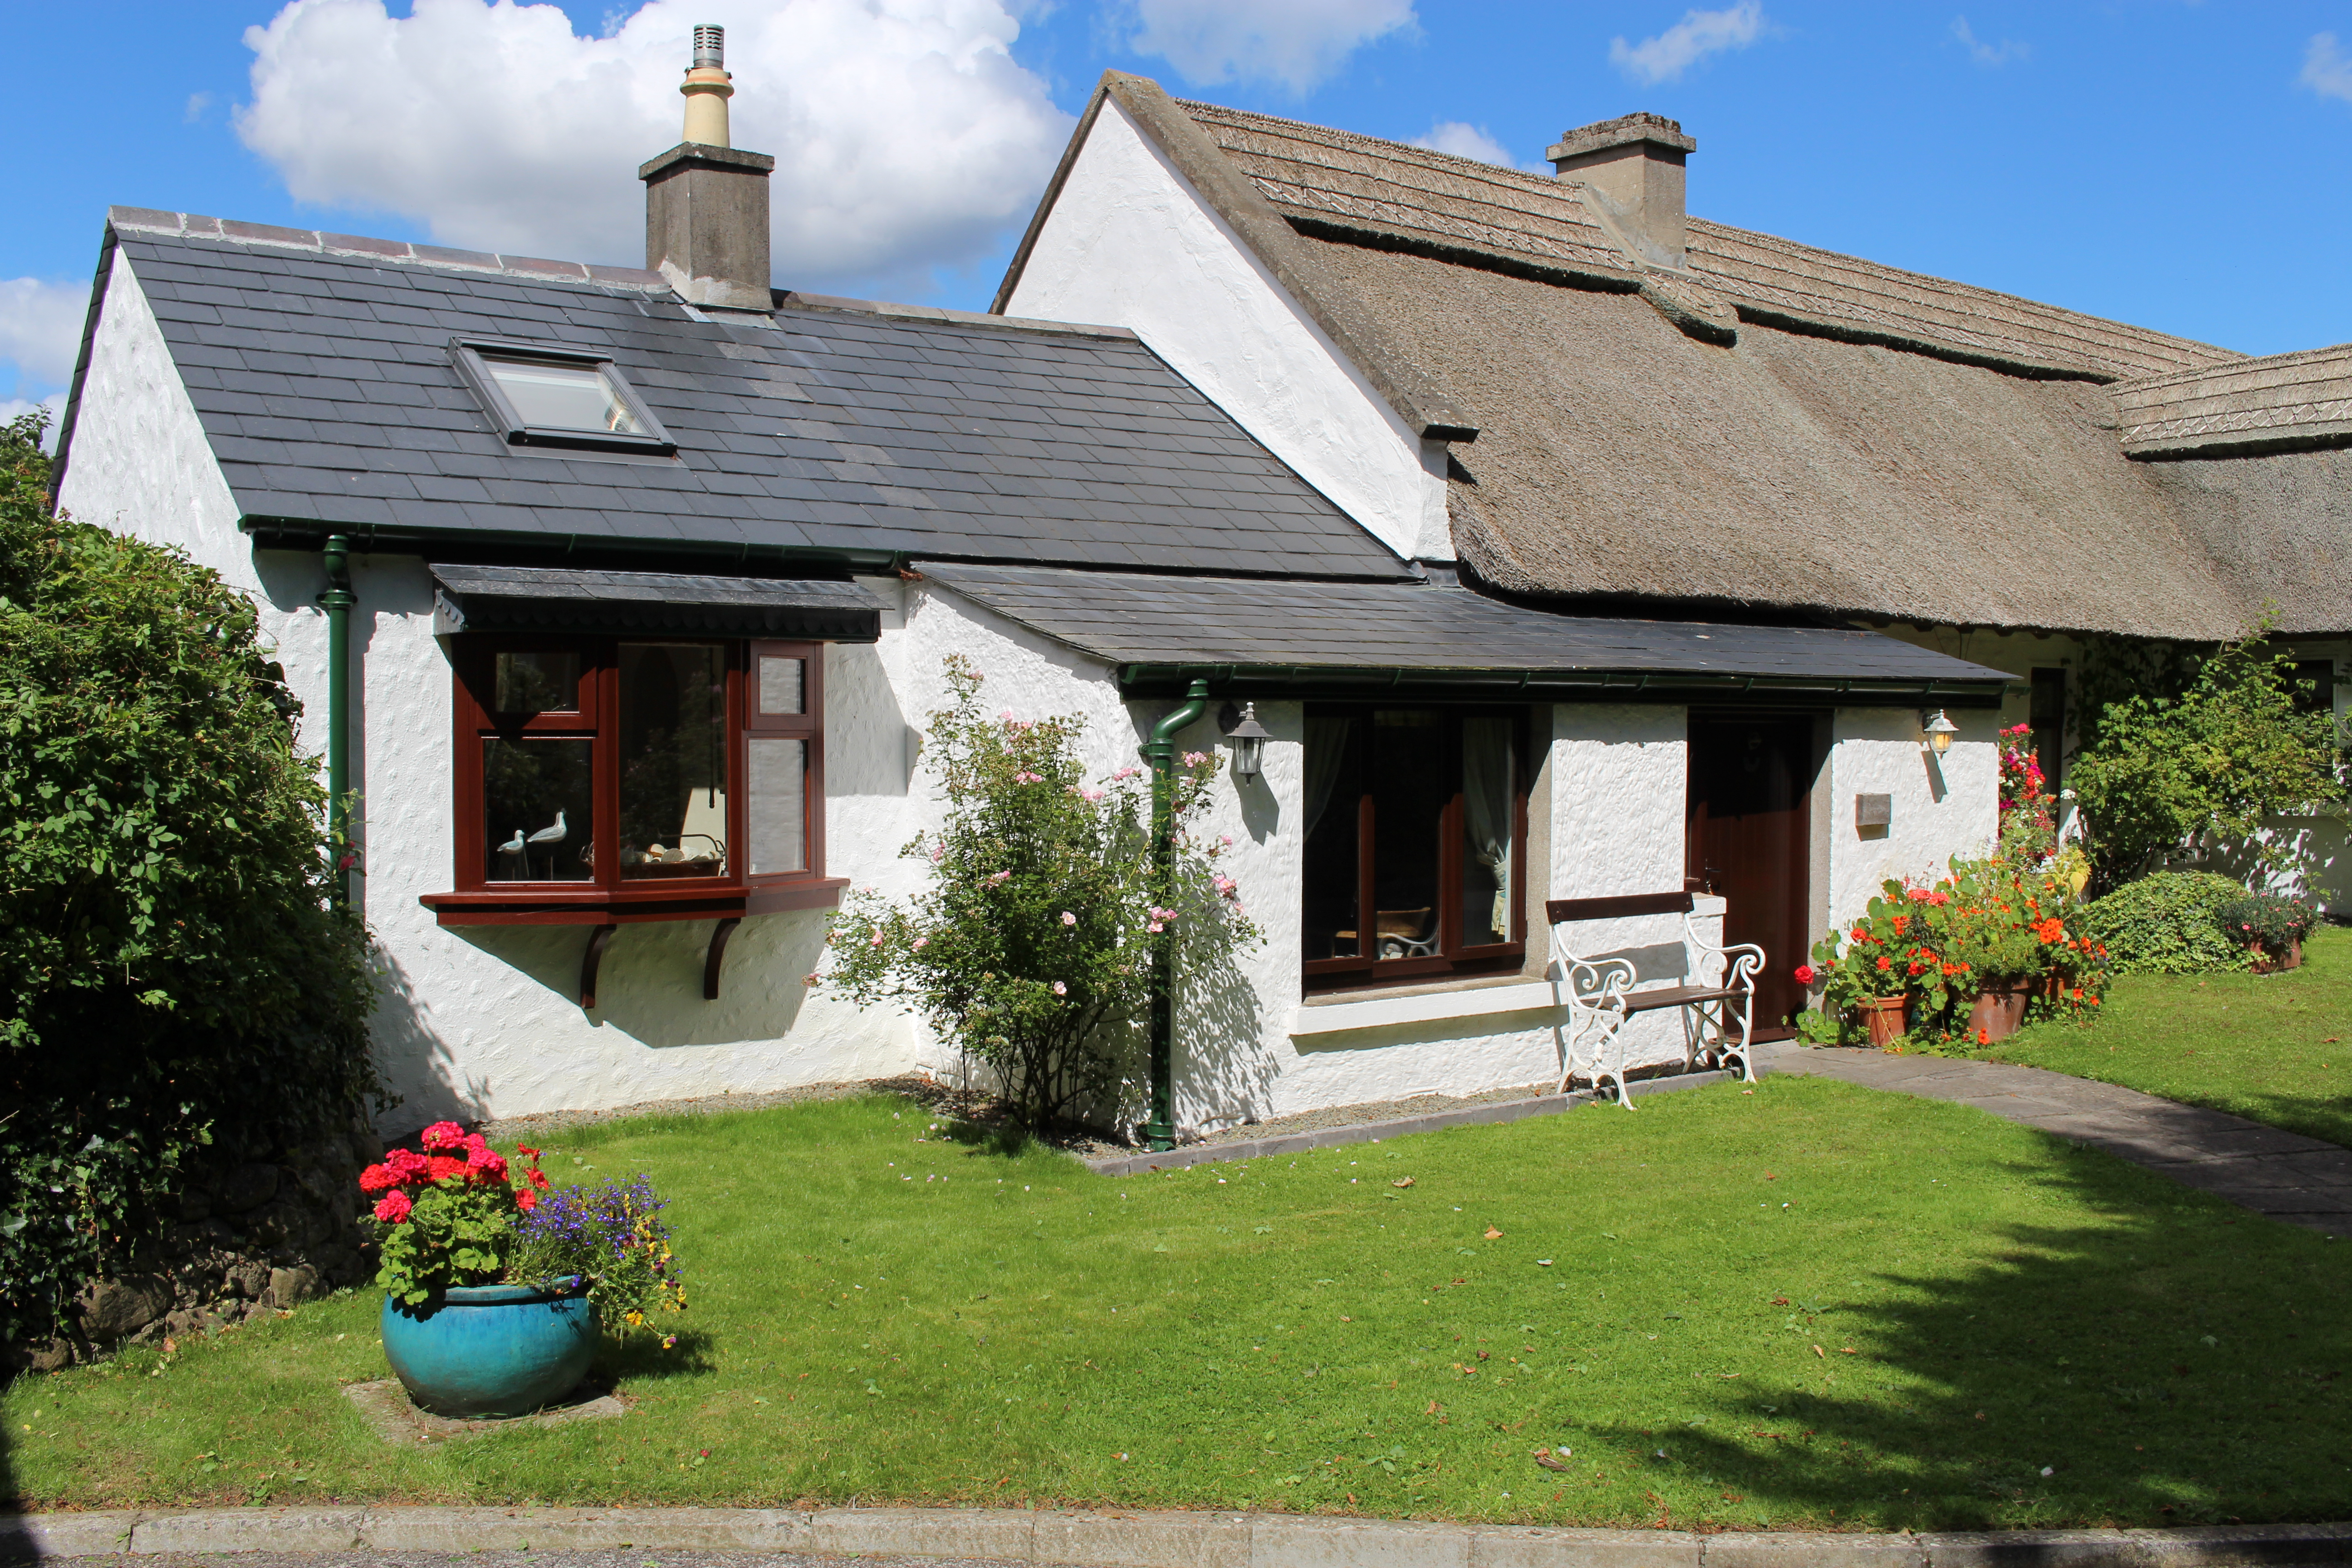 Home En Garden Honeymoon Cottage Luxury Honeymoon Cottage In Ireland